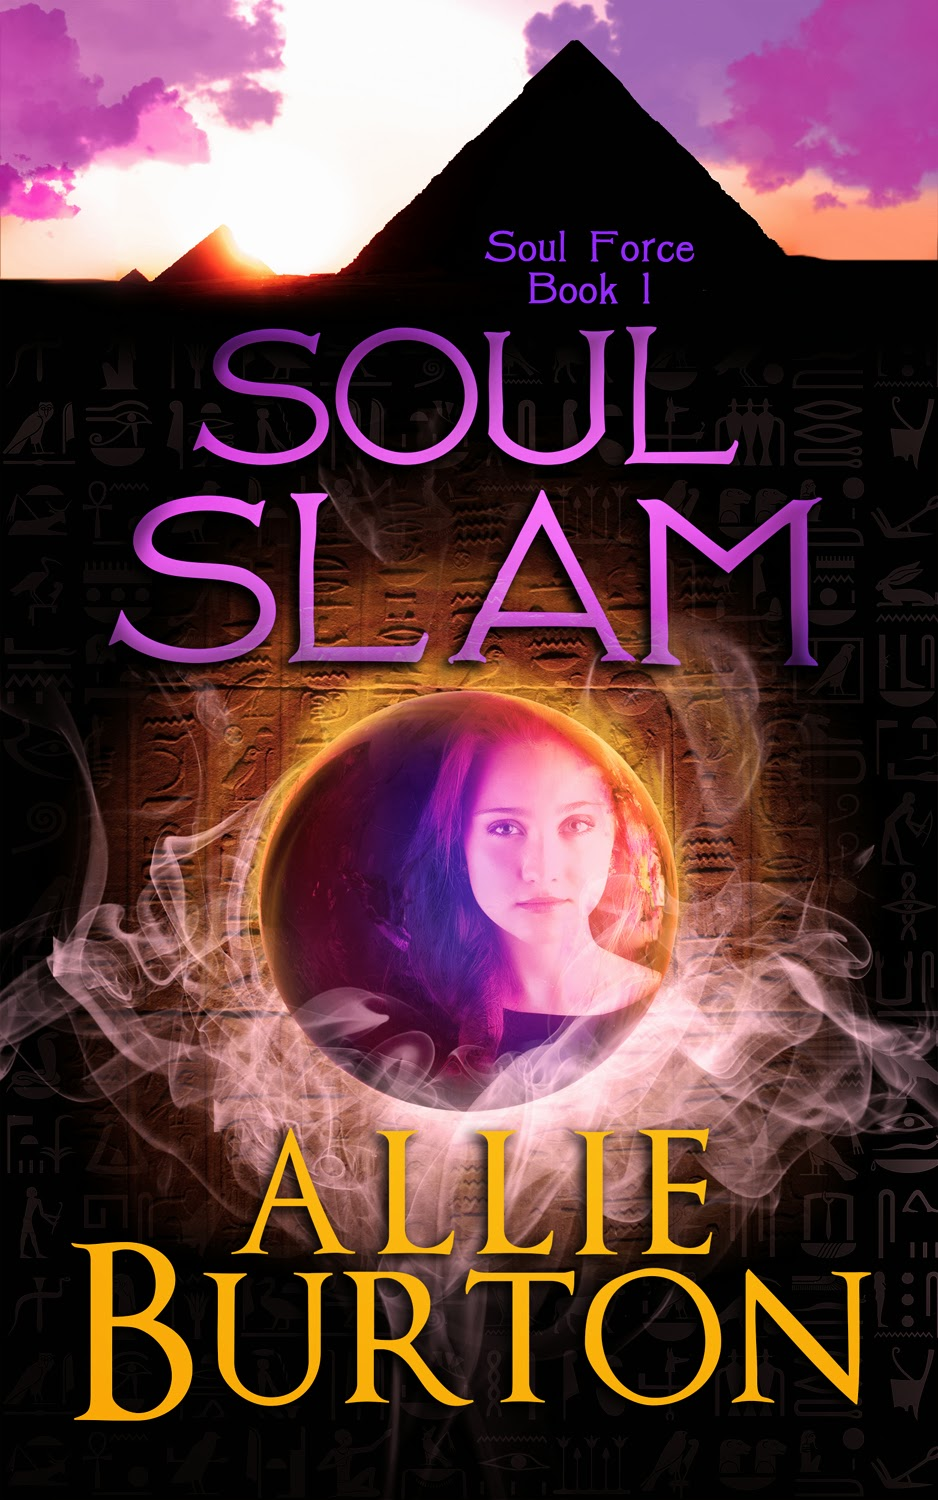 A Sixteenyearold On Her First Heist To Steal An Ancient Egyptian Amulet  Inadvertently Receives The Soul Of King Tut…and The Deadly Curse Thates  With